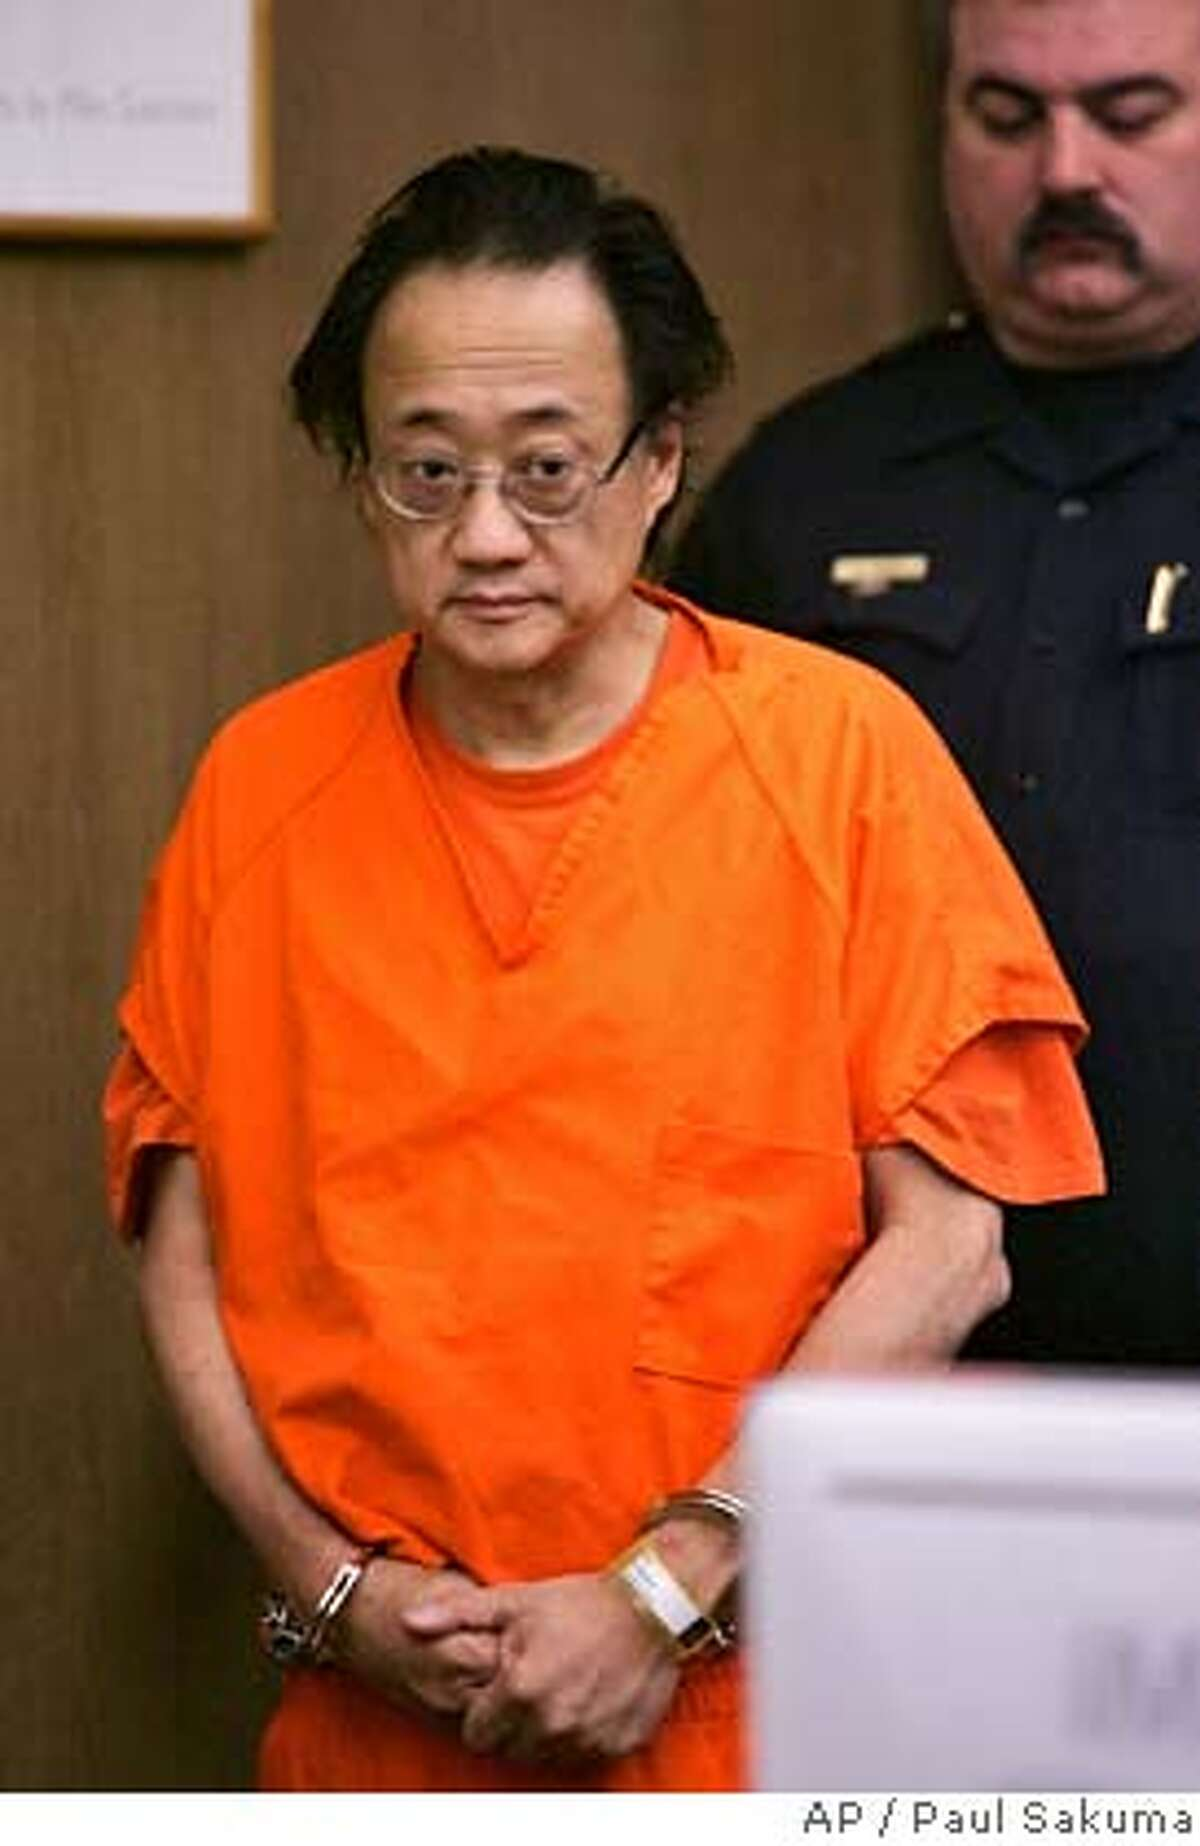 Norman Hsu is escorted into a Redwood City, Calif., courtroom, Friday, Sept. 21, 2007. Jilted investors who sunk $63 million into Hsu's alleged Ponzi schemes are competing for whatever financial crumbs they can shake from the disgraced Democratic fundraiser. At the same time, state and federal prosecutors are wrangling over where he should be jailed. (AP Photo/Paul Sakuma, pool) POOL PHOTO